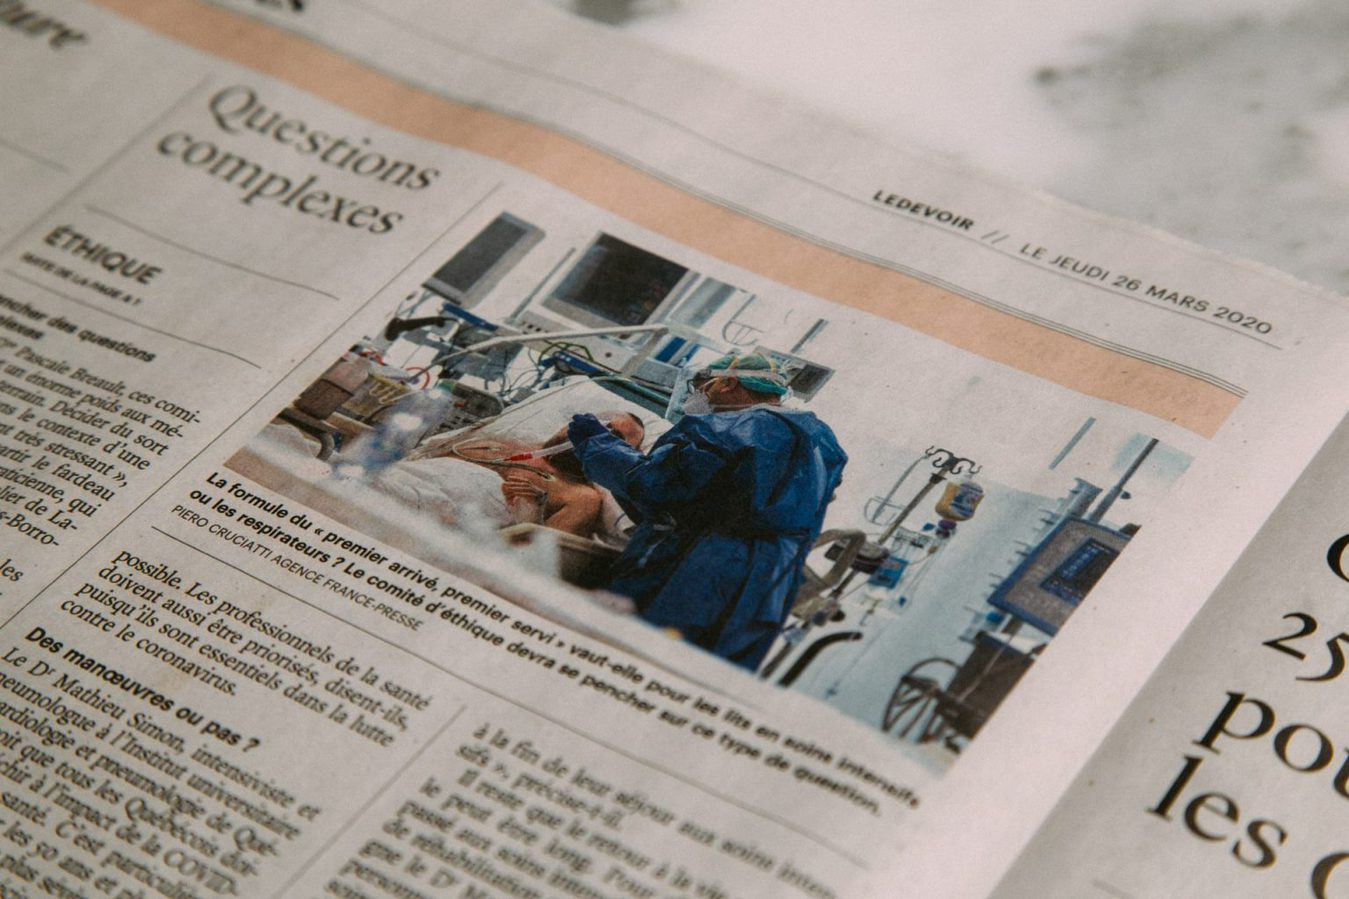 Newspaper article in a French newspaper